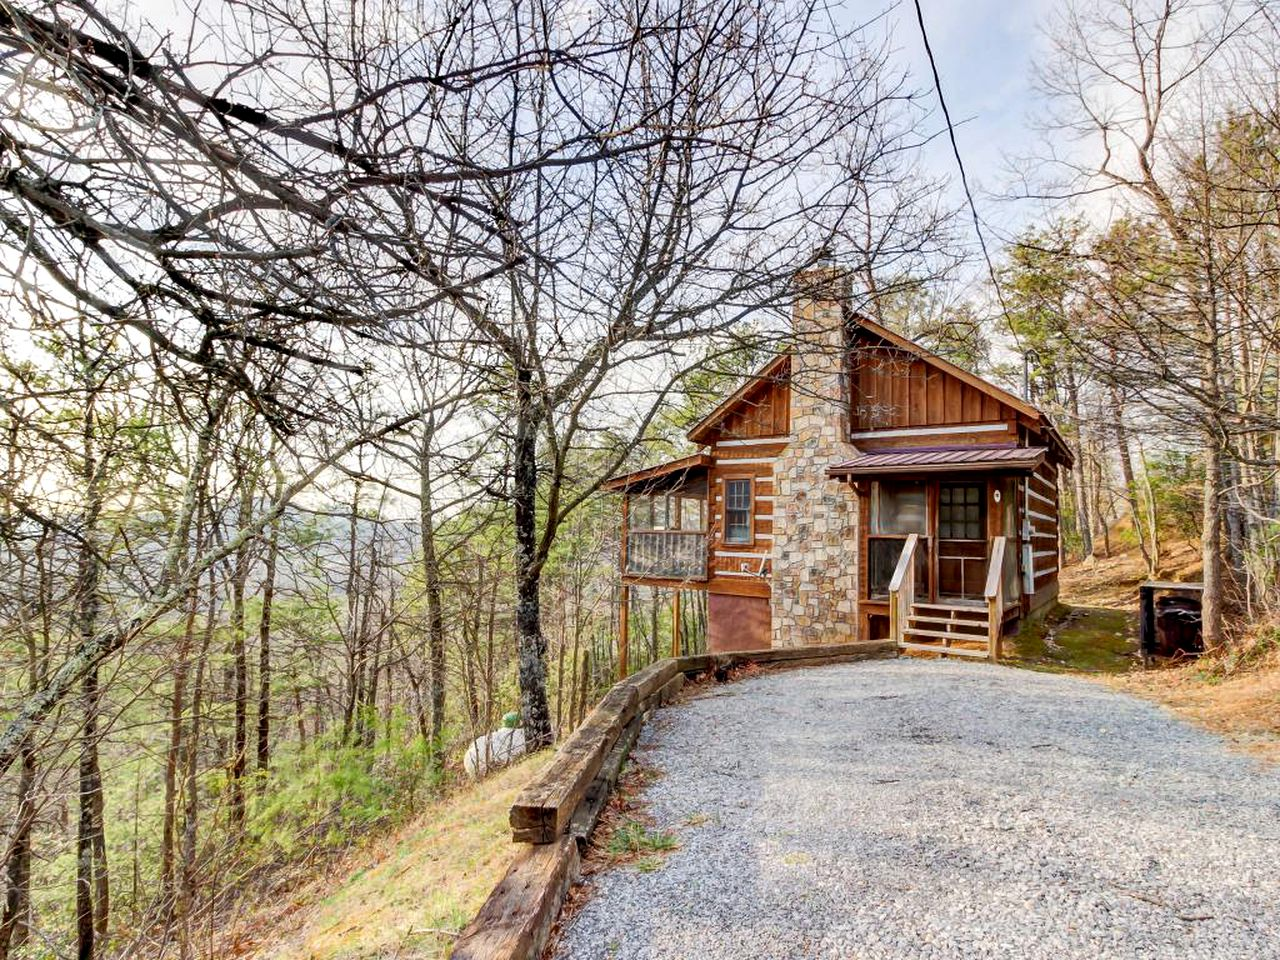 Sevierville cabin rental for a romantic getaway in the Smoky Mountains.